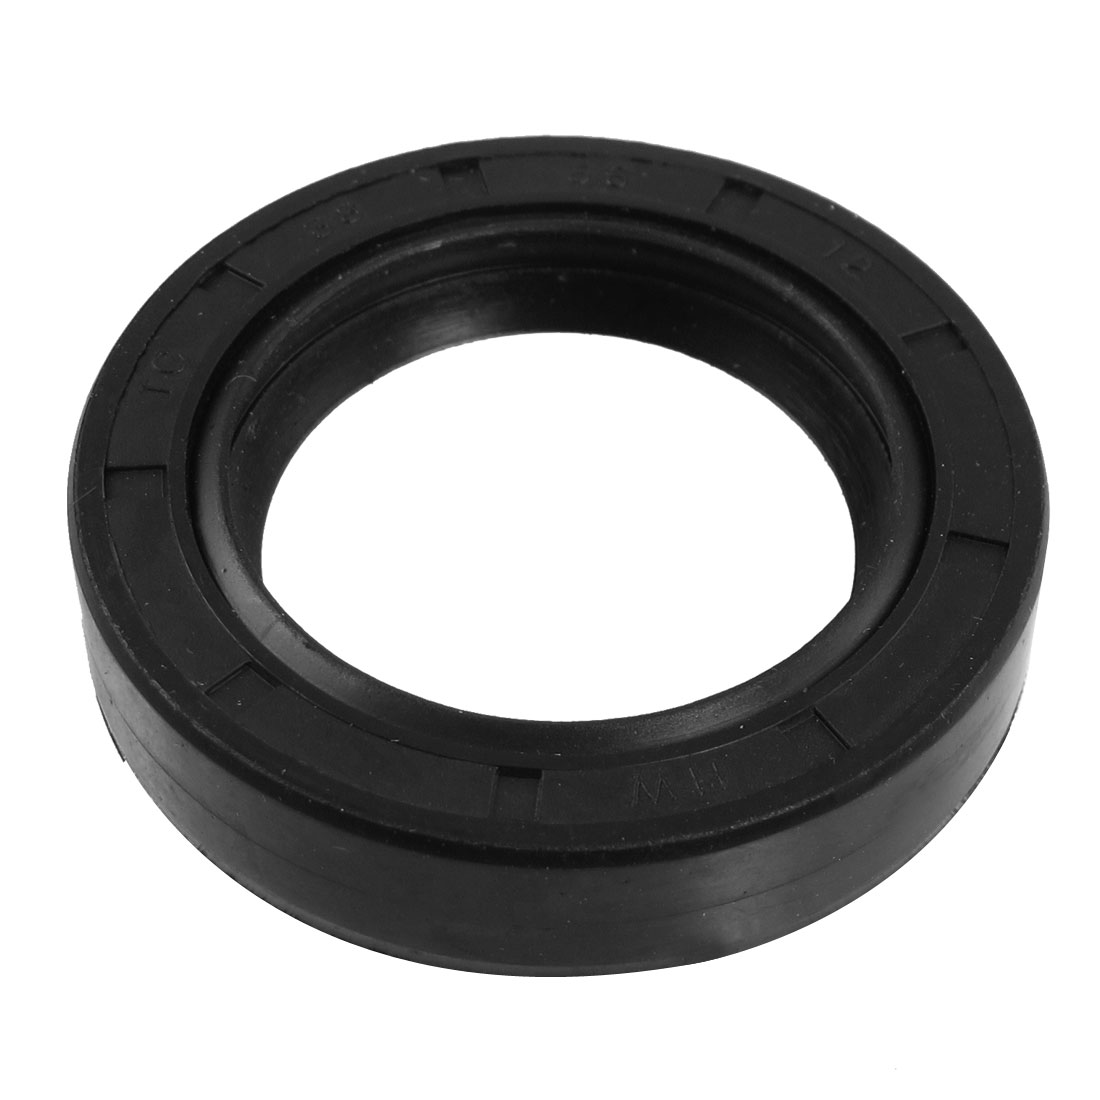 Black Nitrile Rubber Dual Lips Oil Shaft Seal TC 38mm x 56mm x 12mm